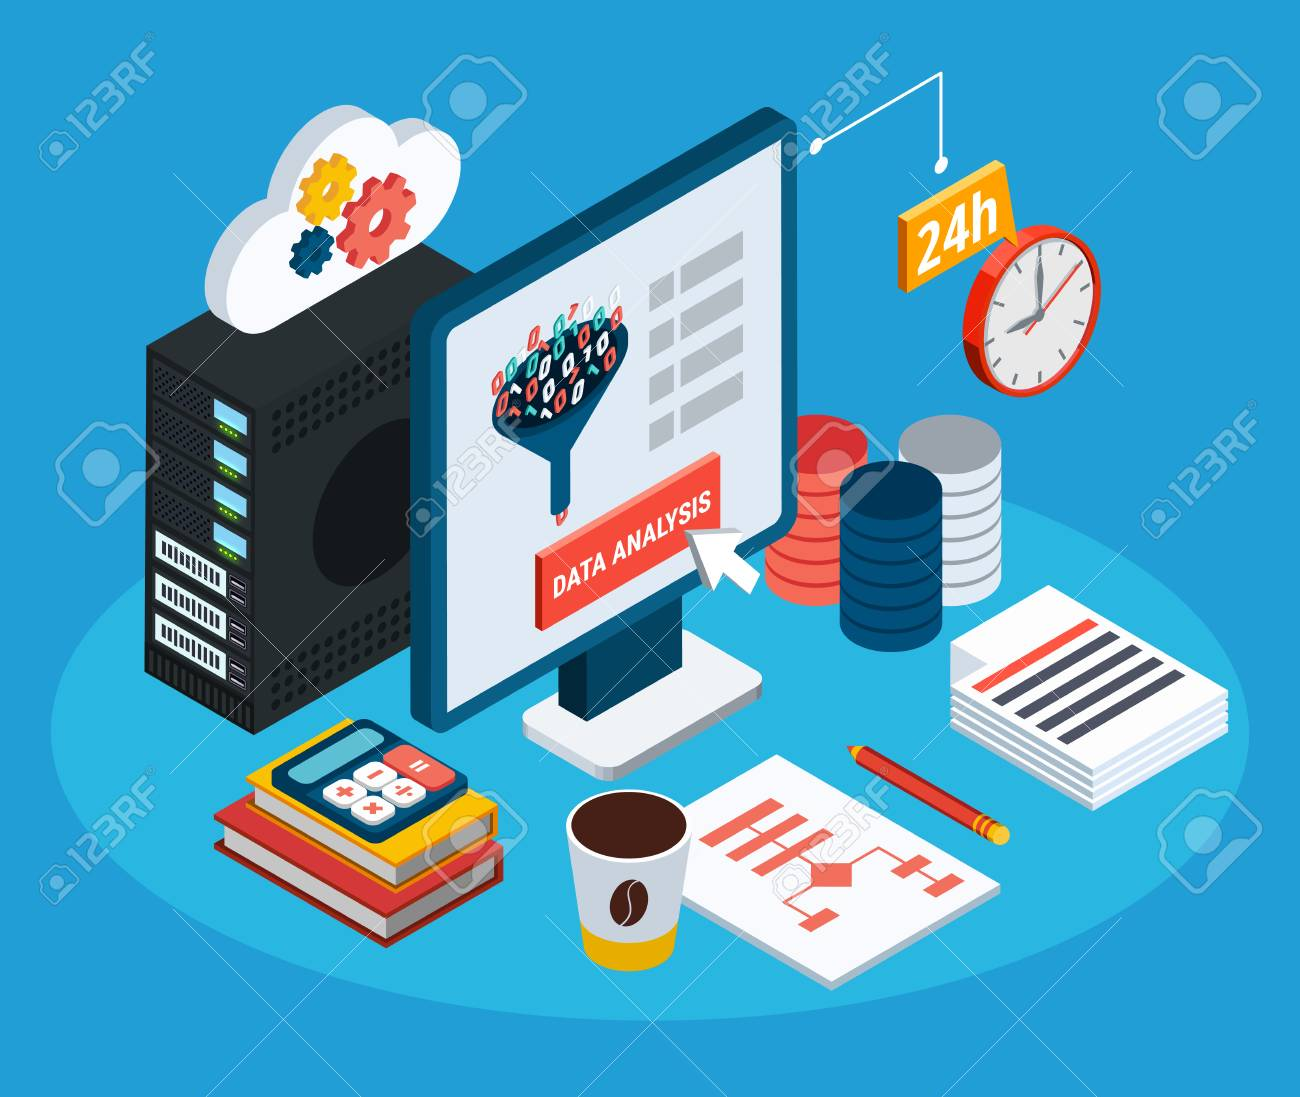 Data analysis isometric background with computer connected by